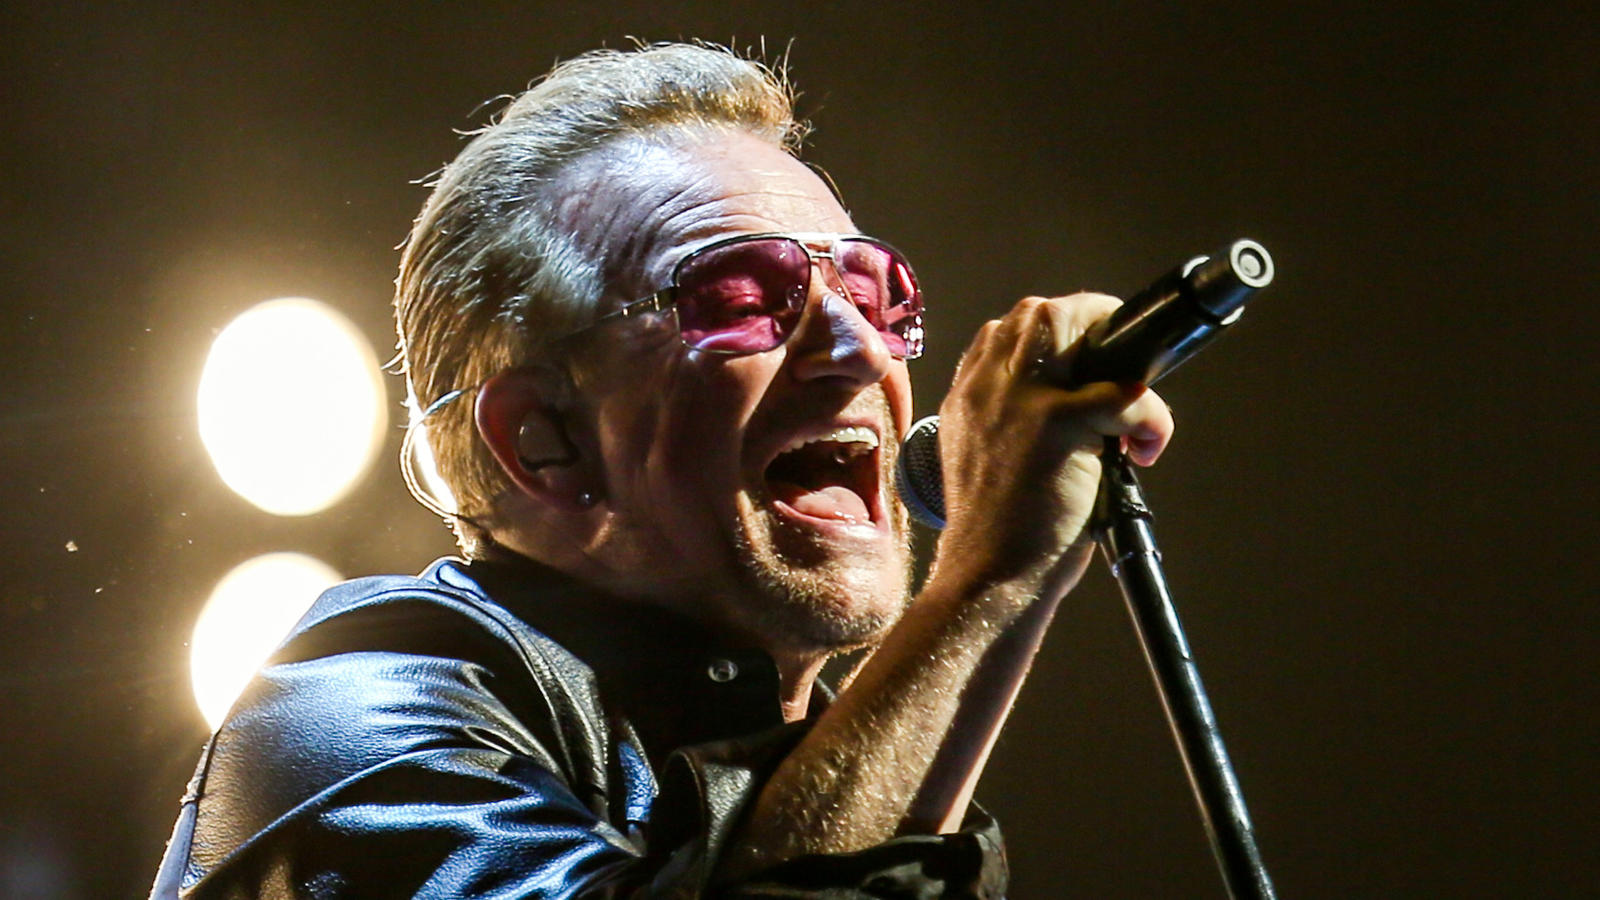 U2 frontman Bono performs at the Forum in Inglewood in 2015. (Rich Fury / Invision)